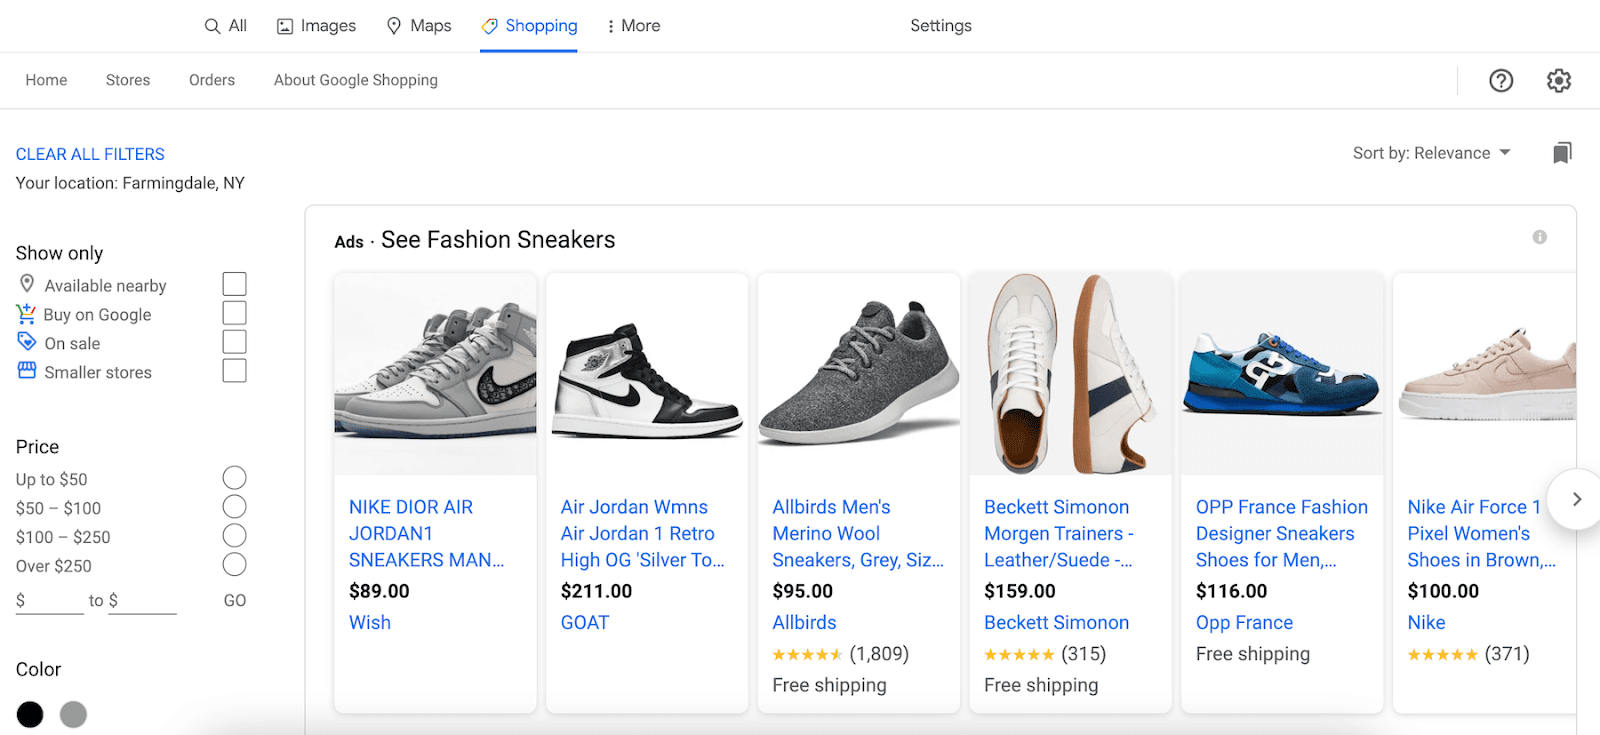 google shopping UI with sneakers from various brands